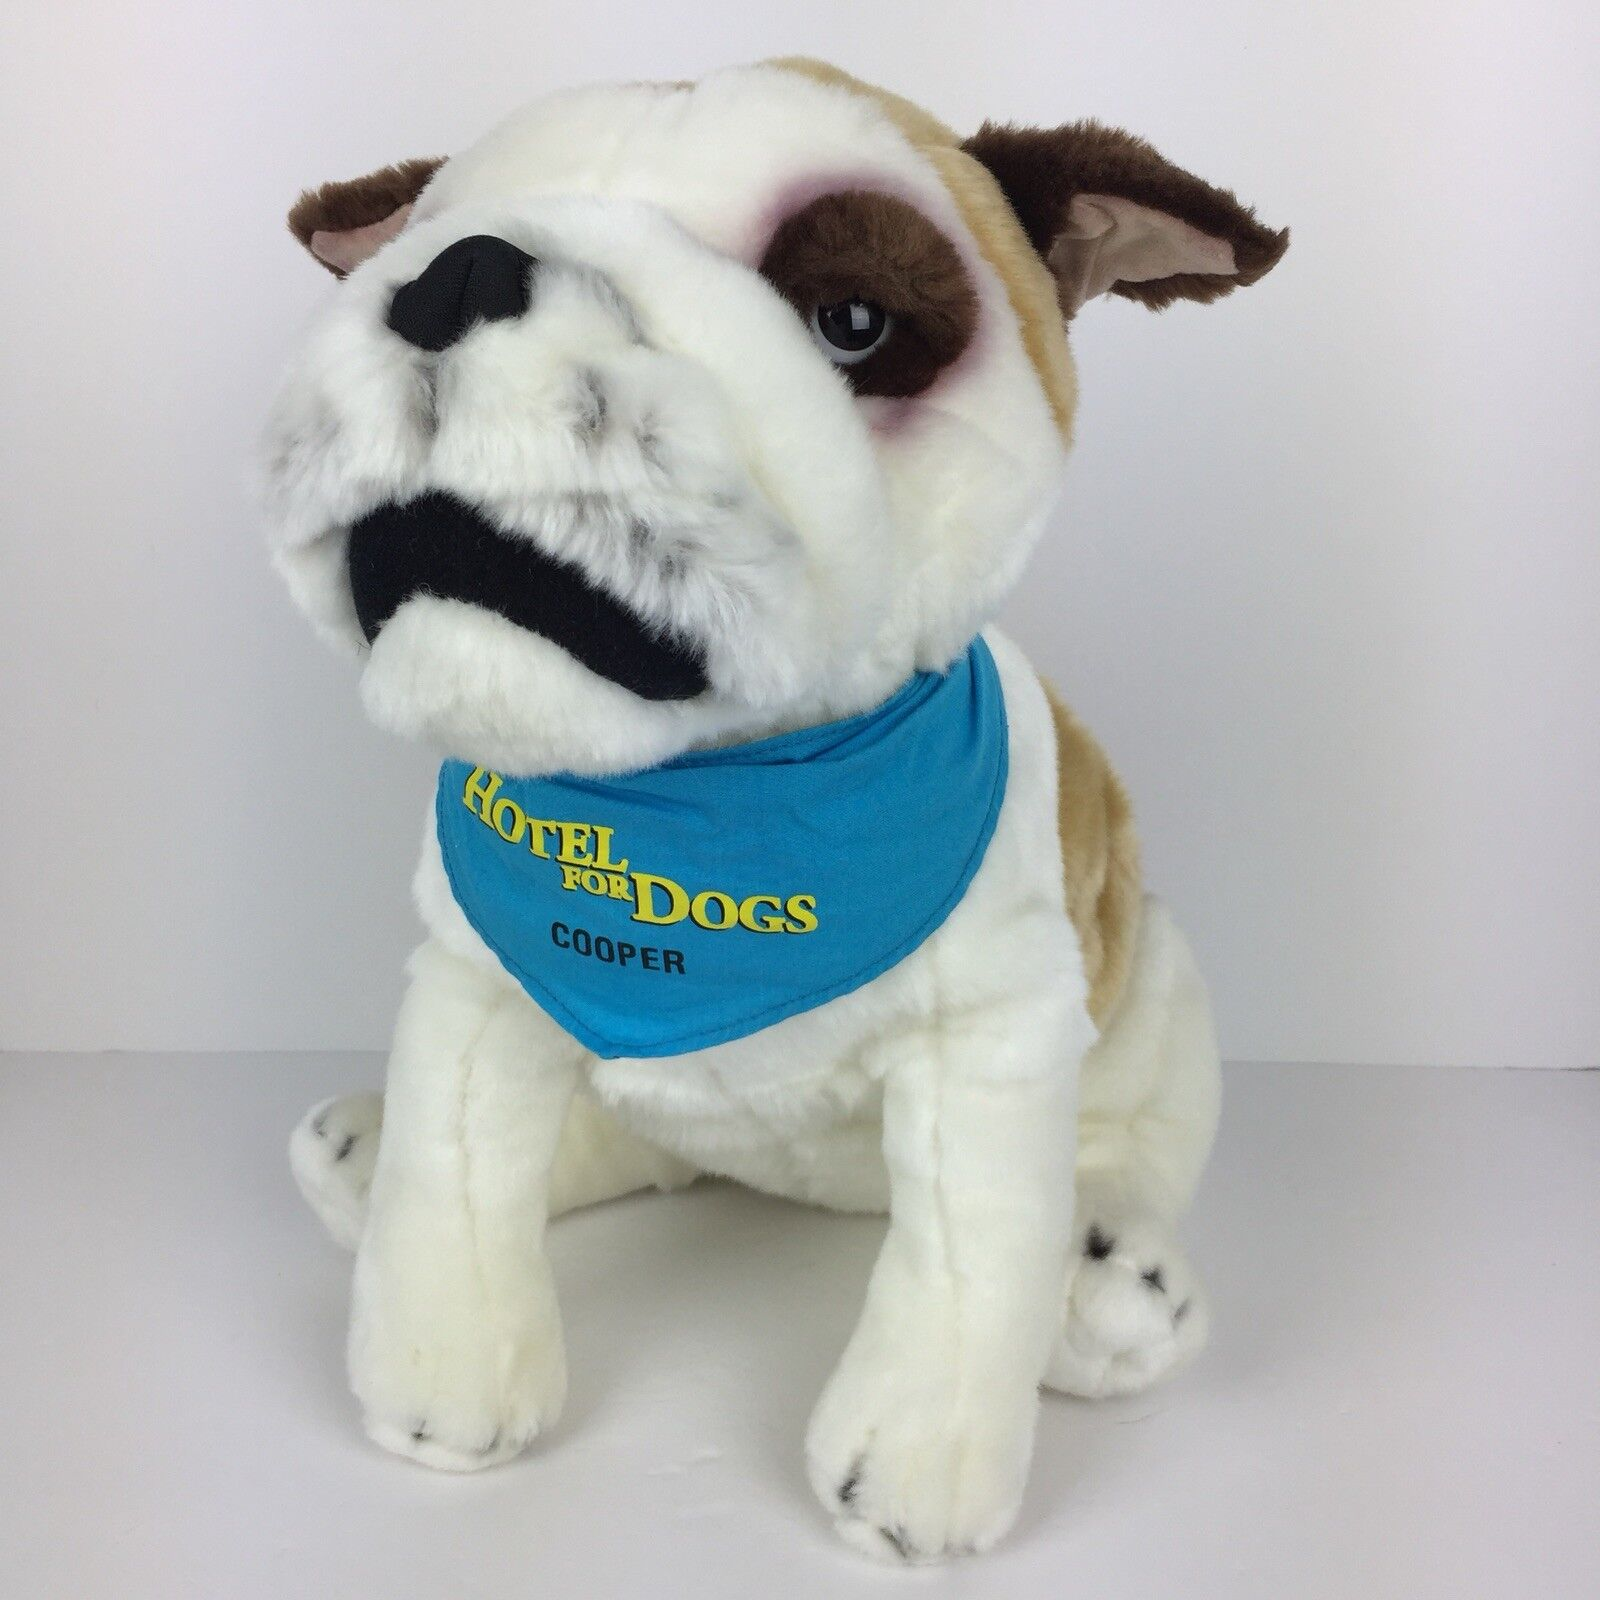 Hotel for Dogs Cooper Plush Stuffed Animal Bulldog Large 14 14  Toy 2008 DreamWorks